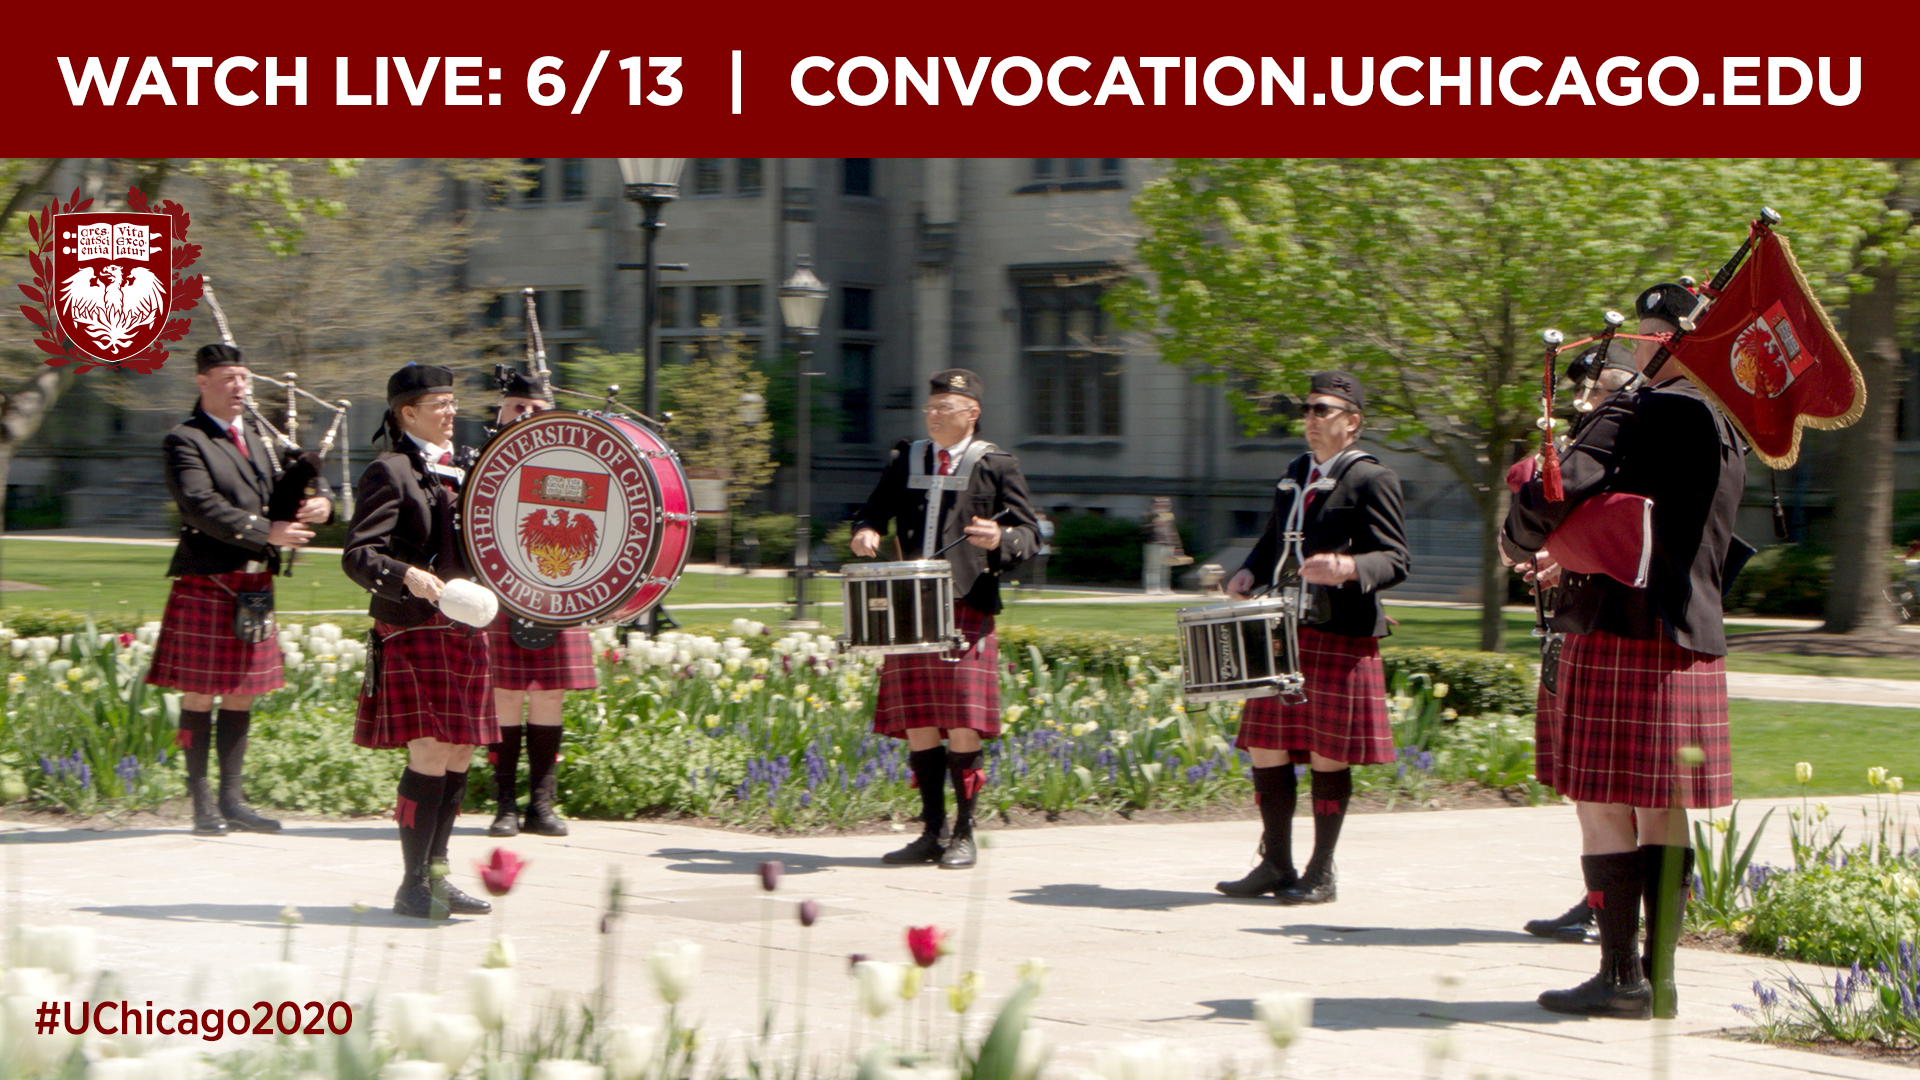 UChicago Pipe Band performing in the quad